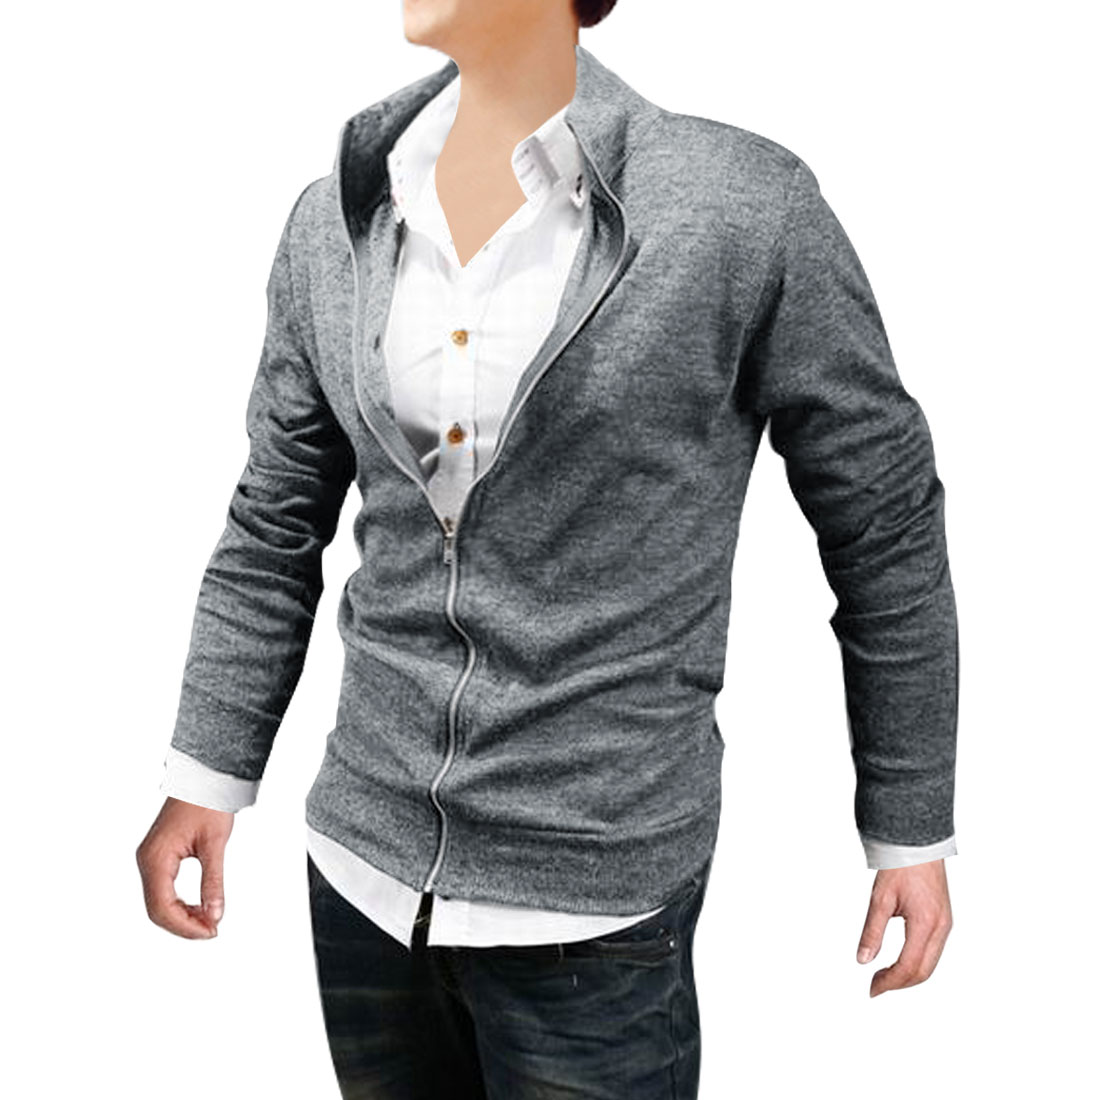 Man Chic Gray Color Zipper Up Front Closure Casual Spring Jacket Coat M